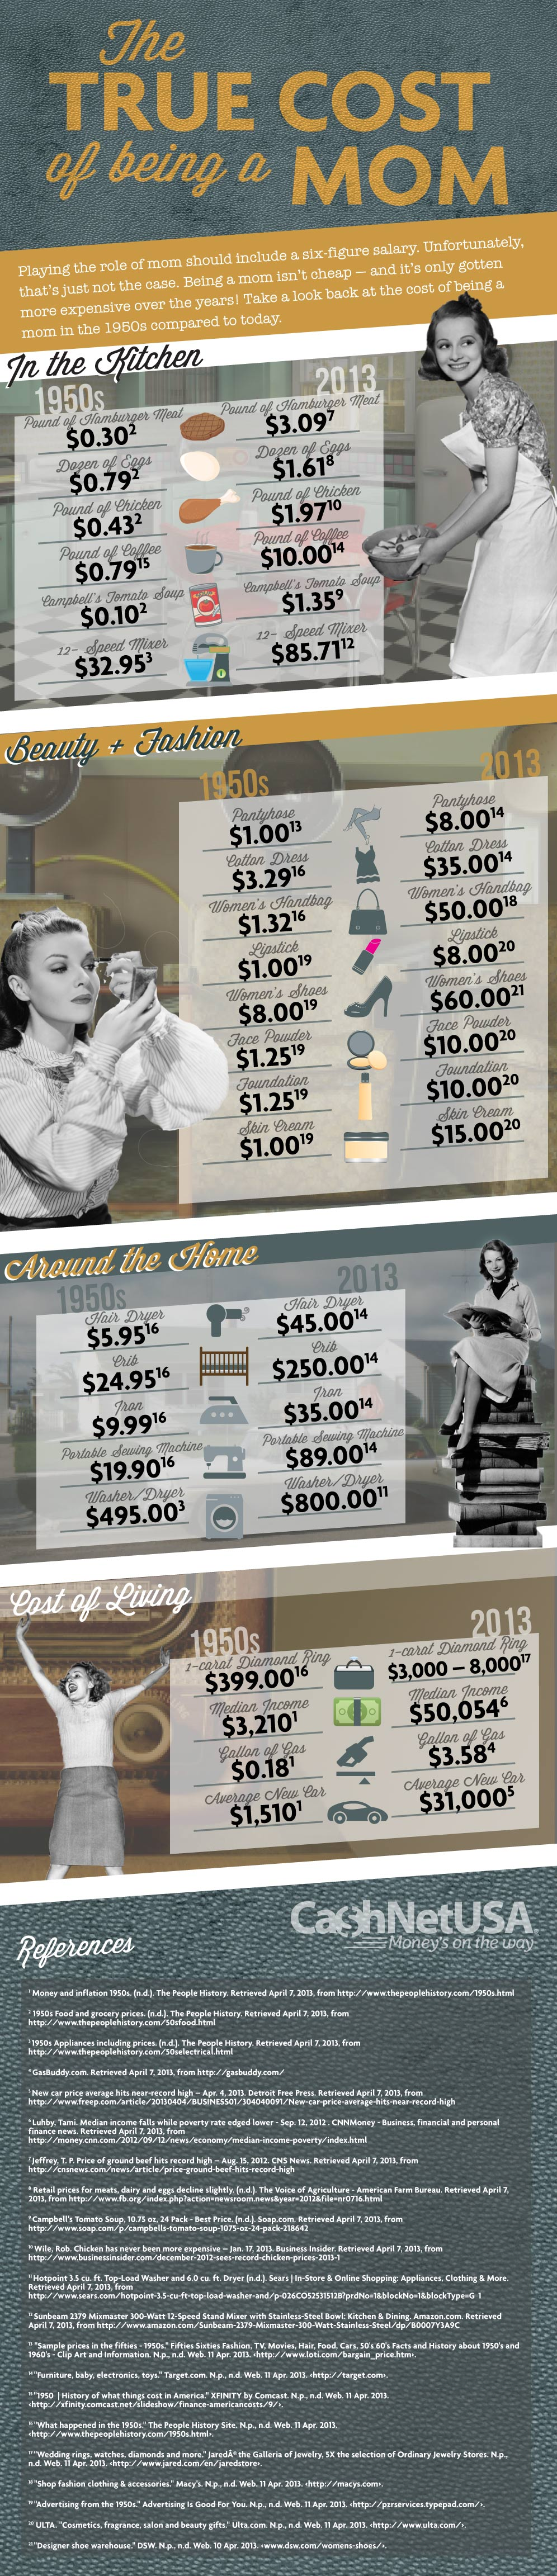 the-true-cost-of-being-a-mom-mom-costs-from-the-1950s-to-today_51833d5469e74